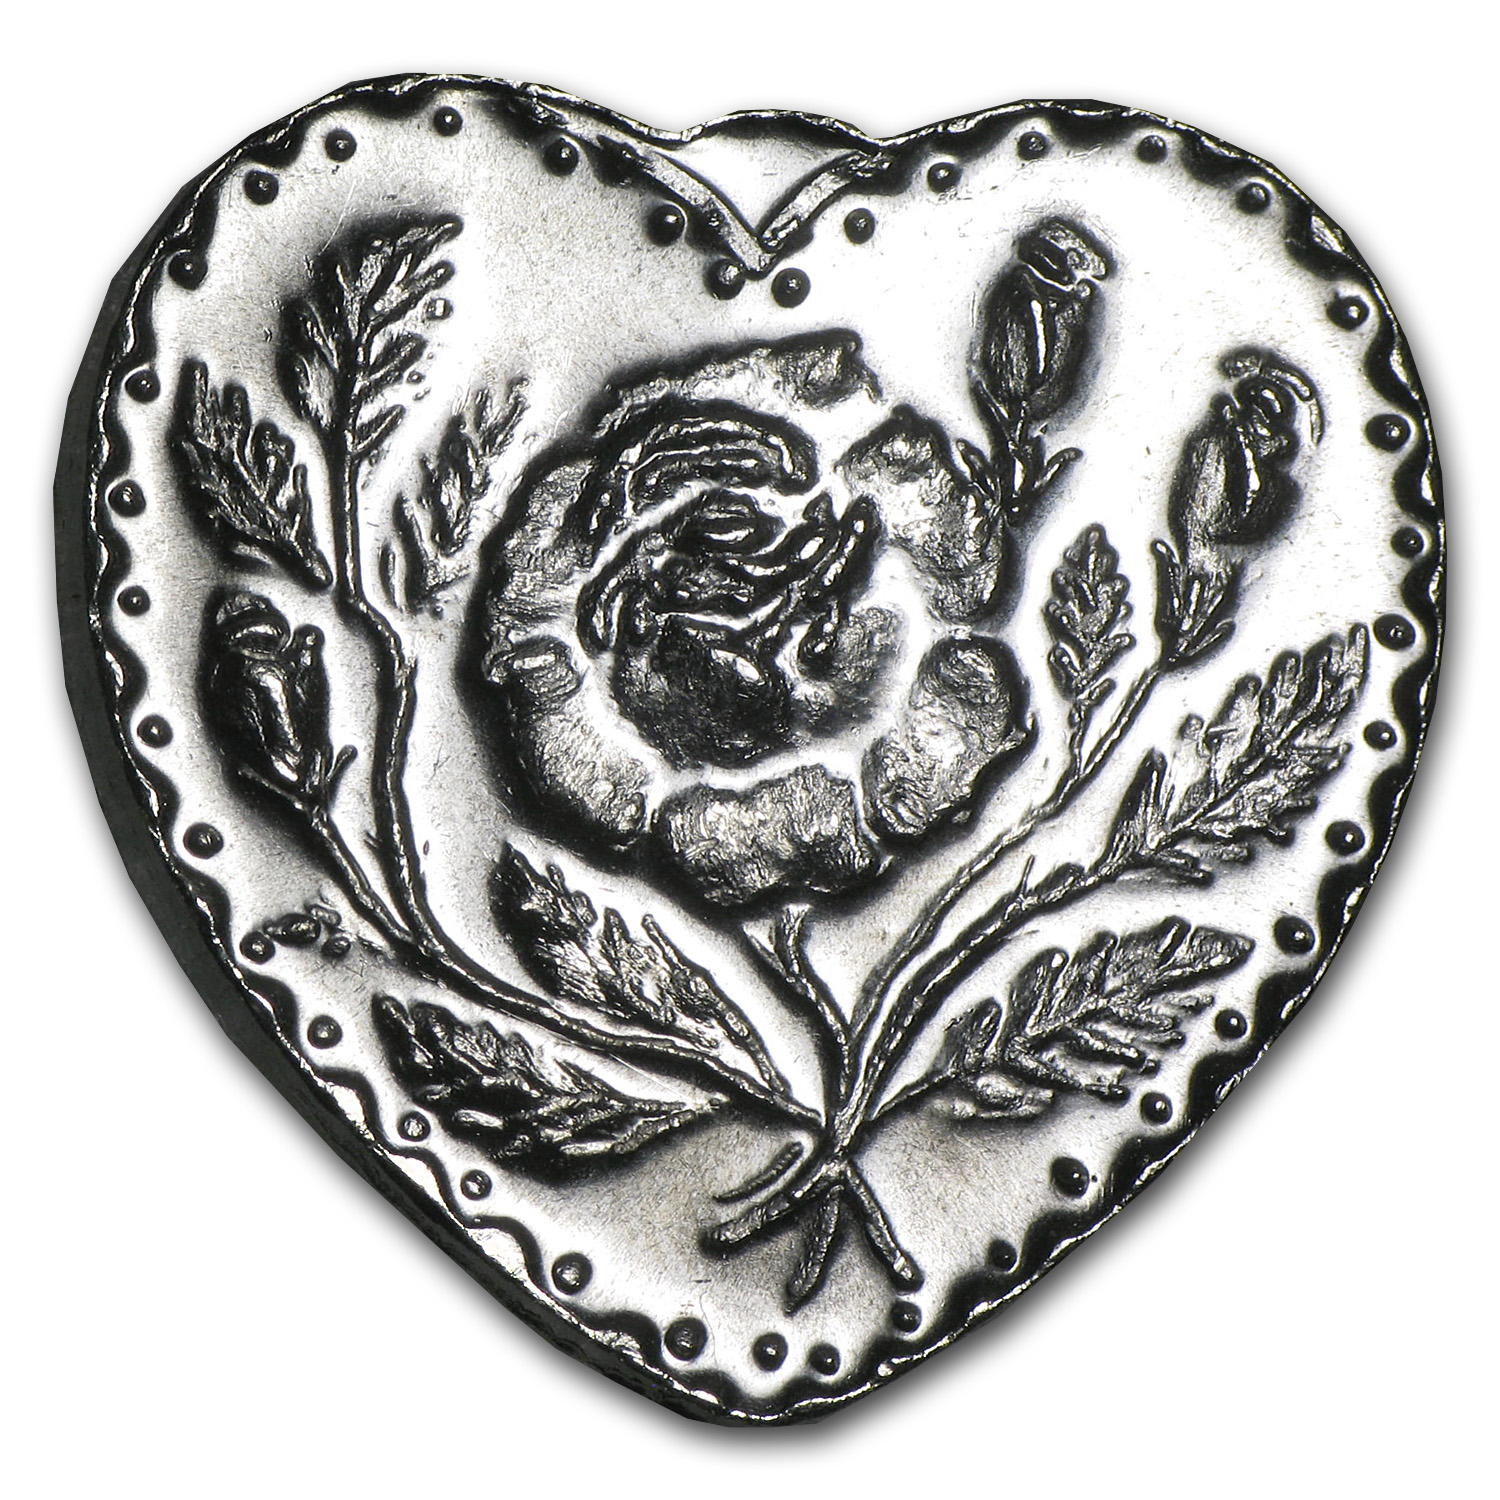 1/2 oz Silver Hearts - For Someone Special (Rose)